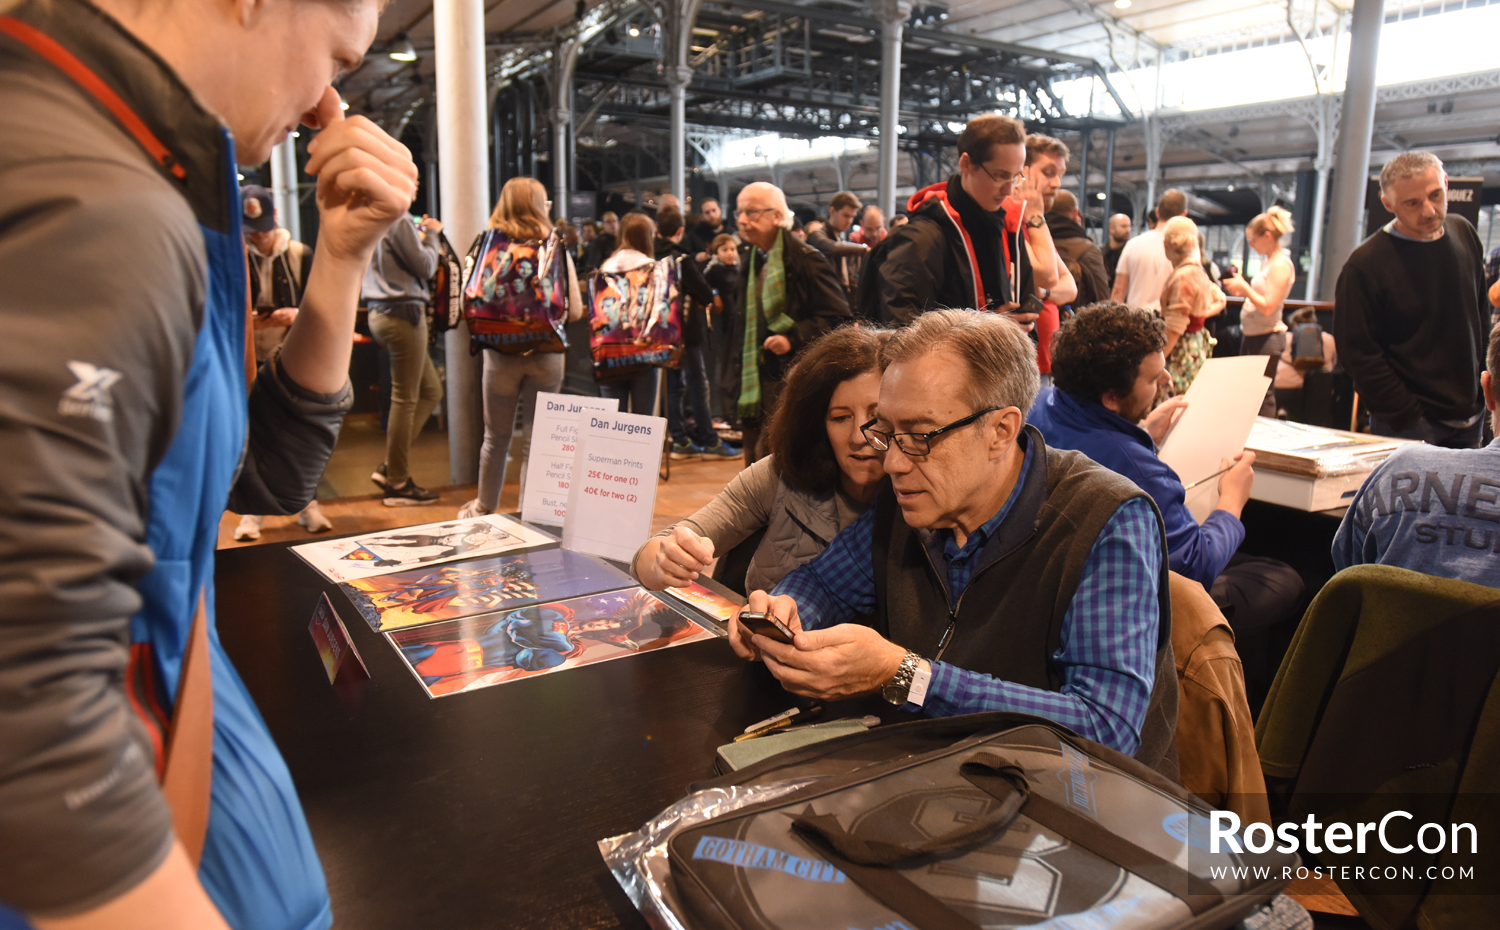 Dan Jurgens - Comic Con Paris 2018